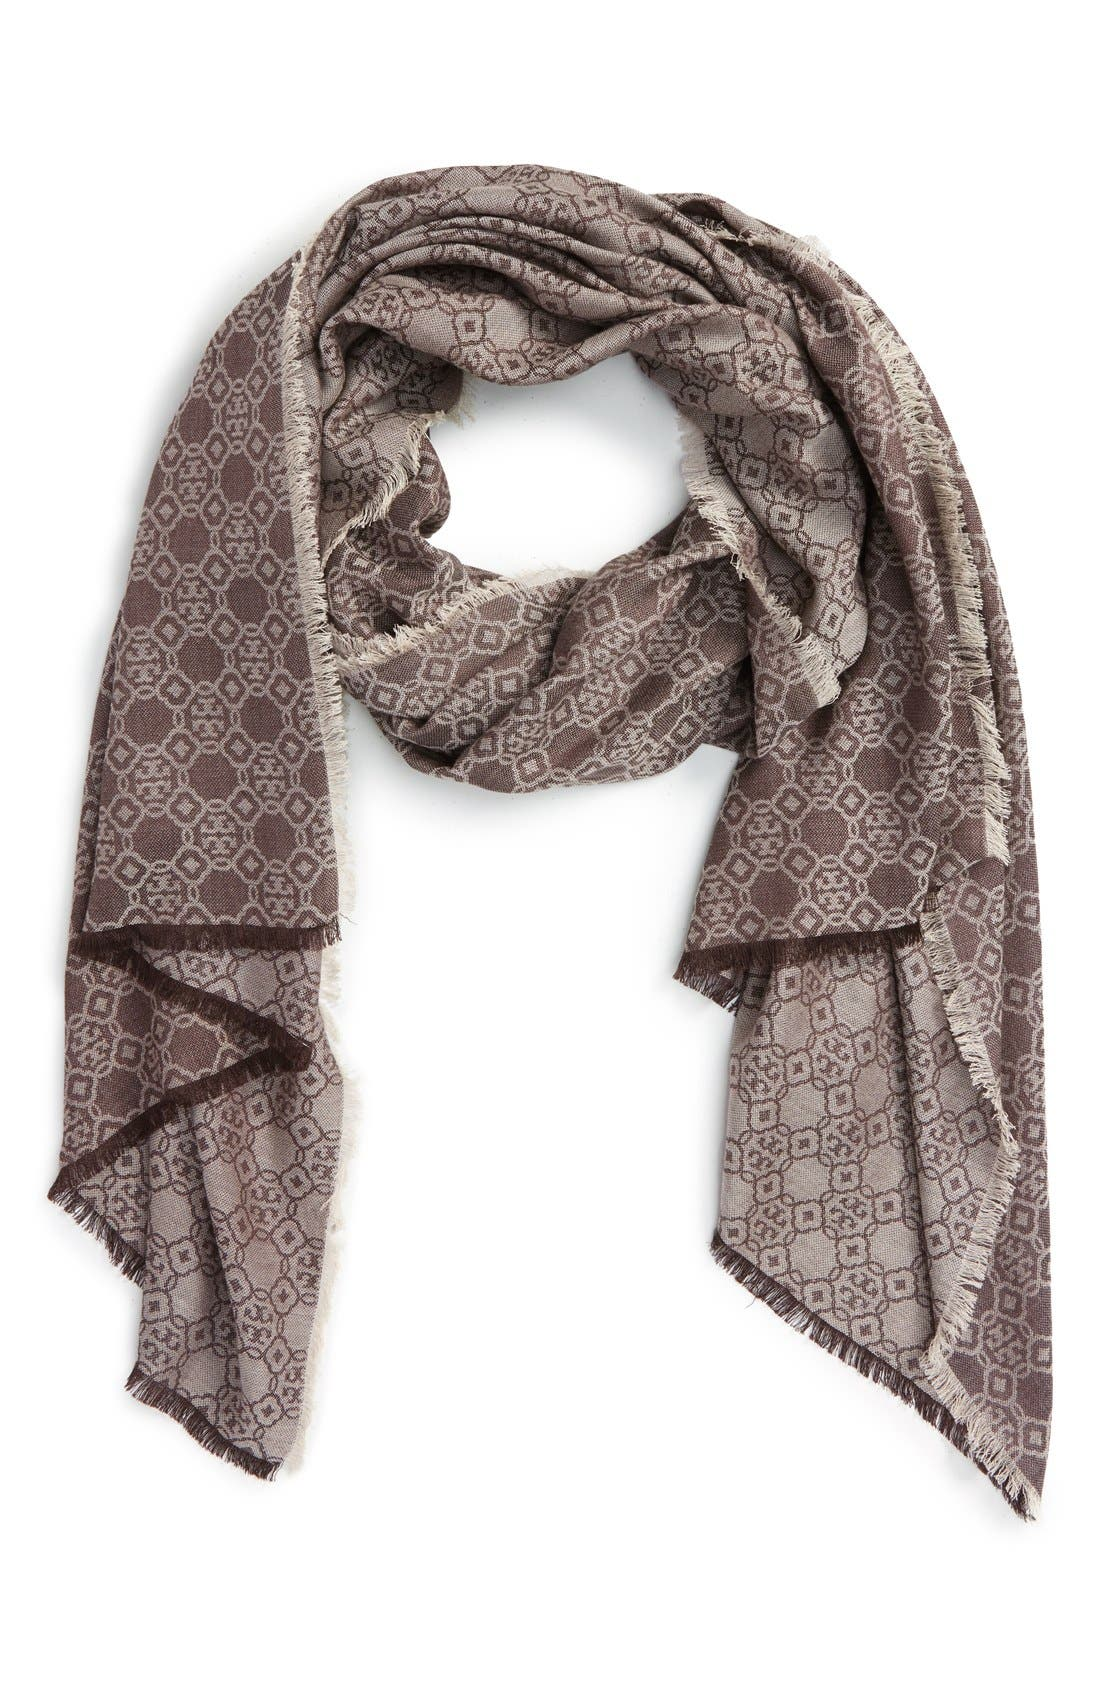 Alternate Image 1 Selected - Tory Burch 'Mosaic Logo' Cotton & Silk Jacquard Scarf